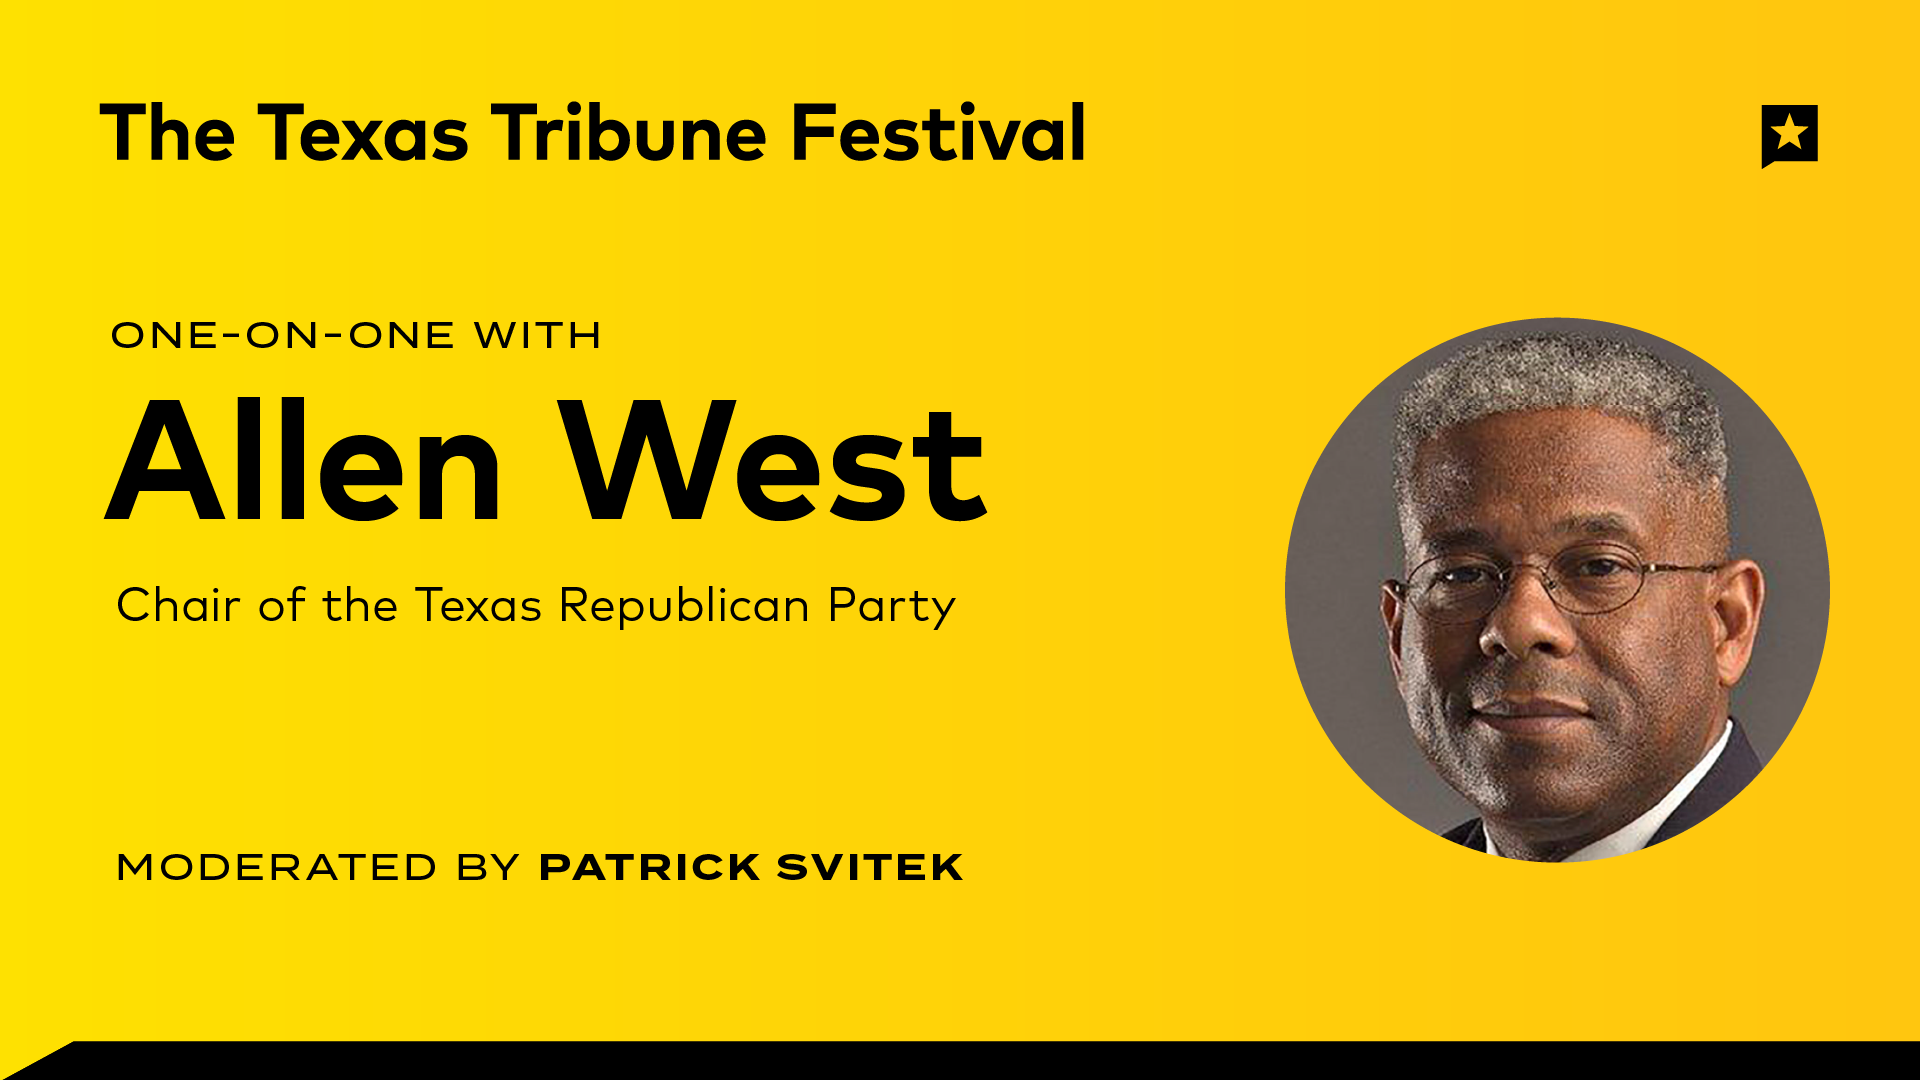 One-on-One with Allen West